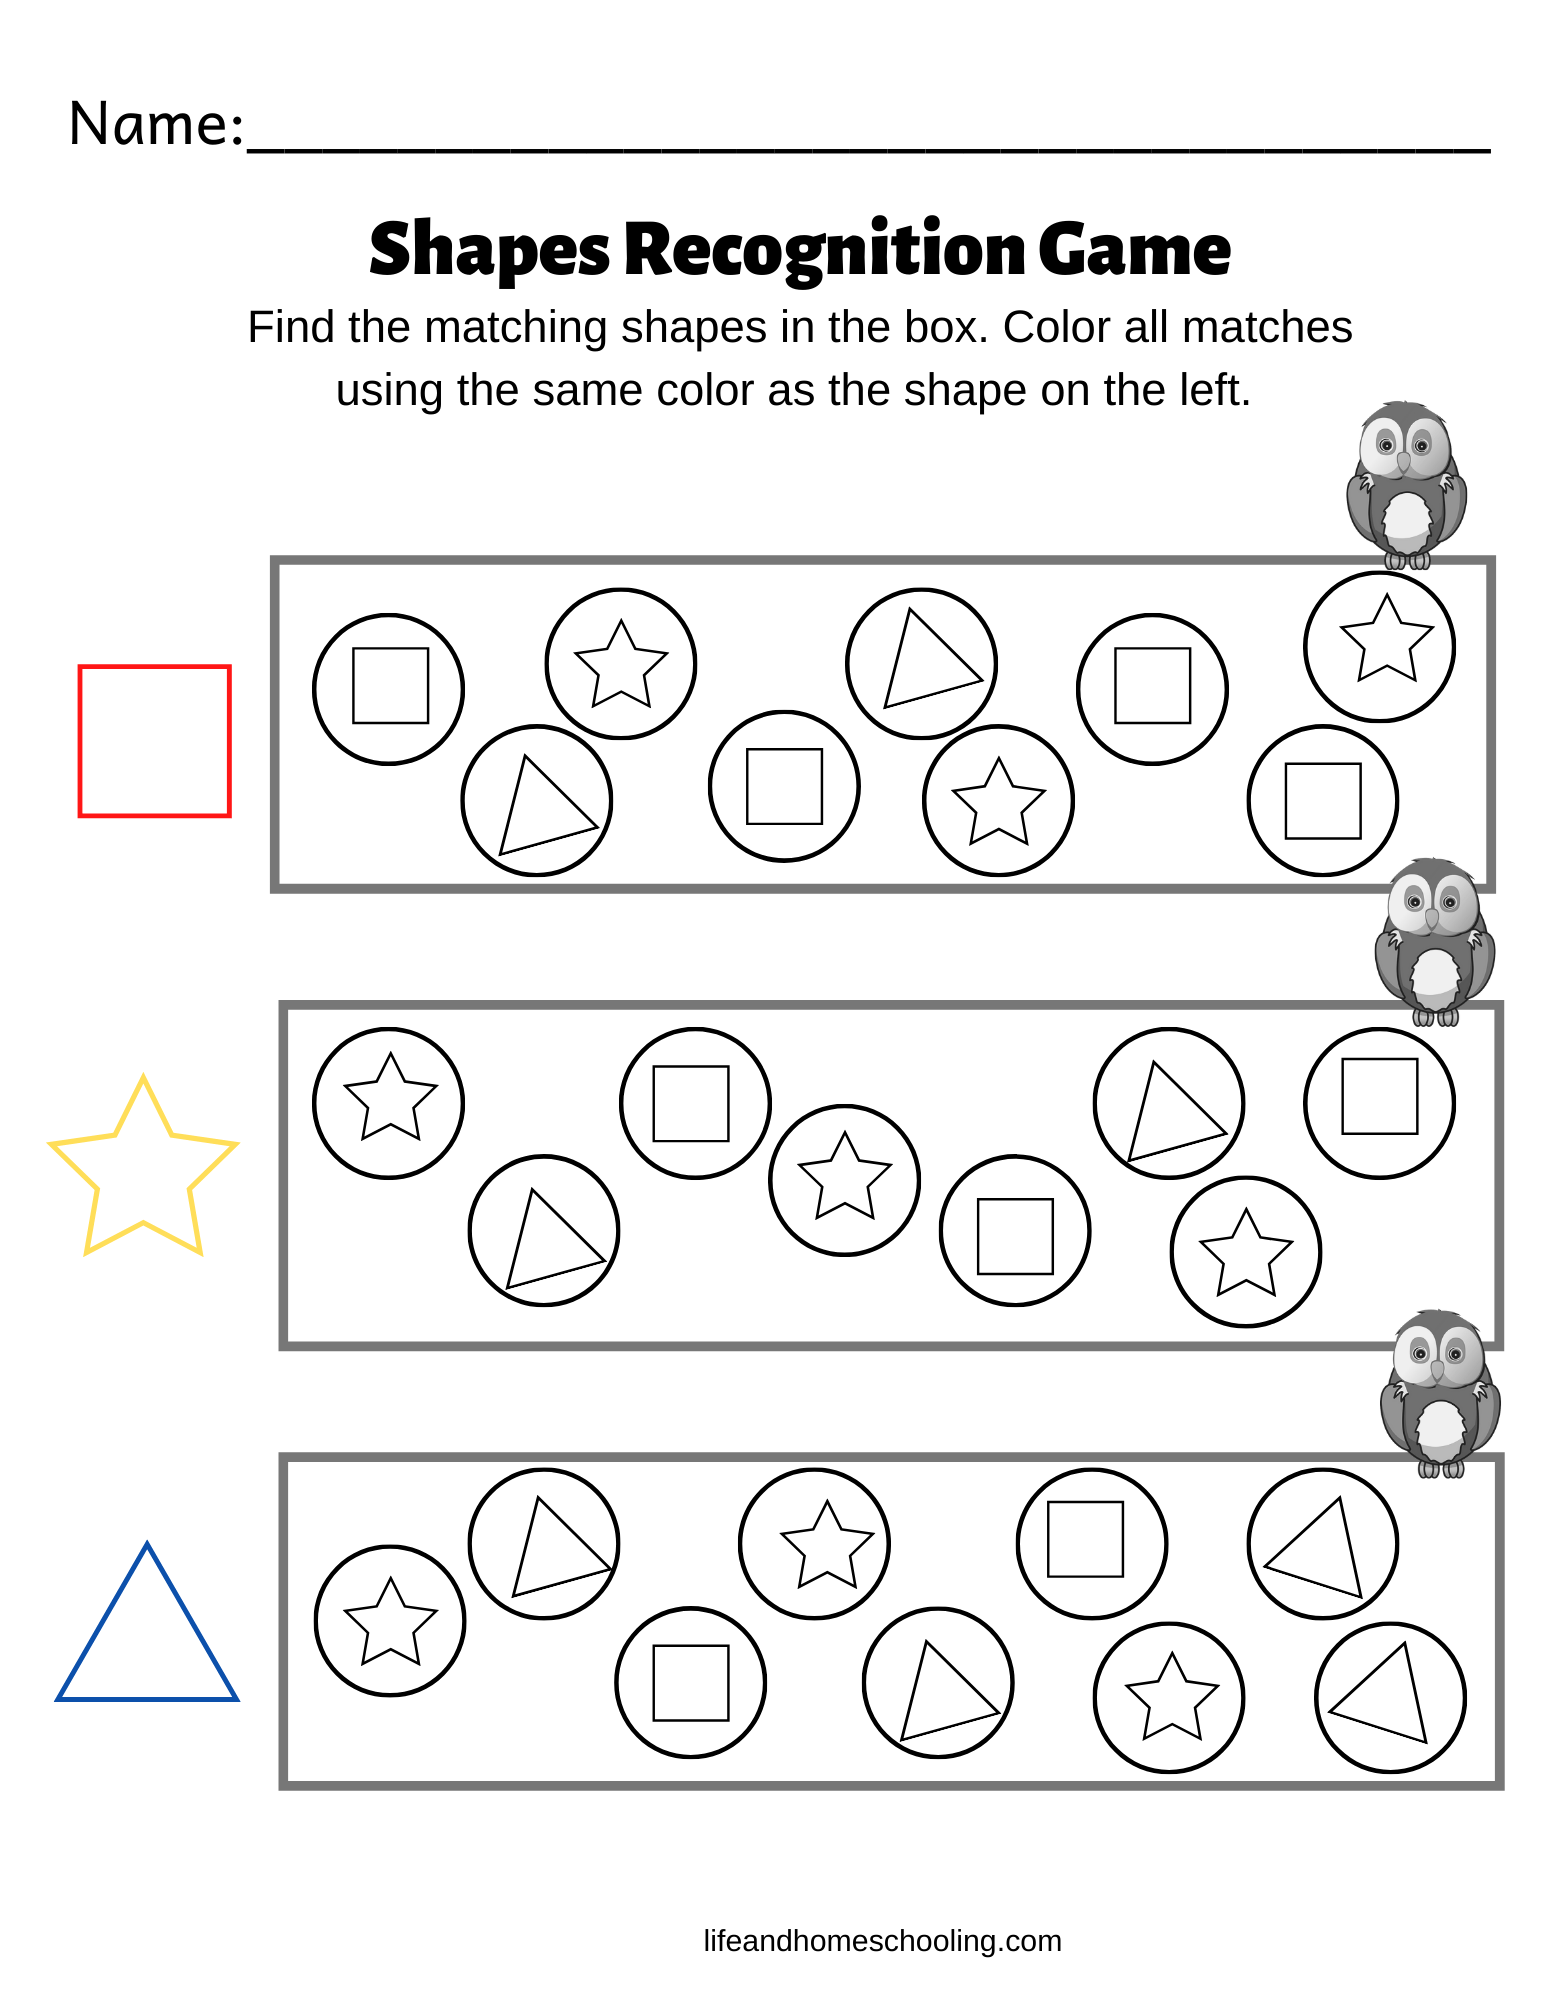 Shapes Recognition Activity Worksheets